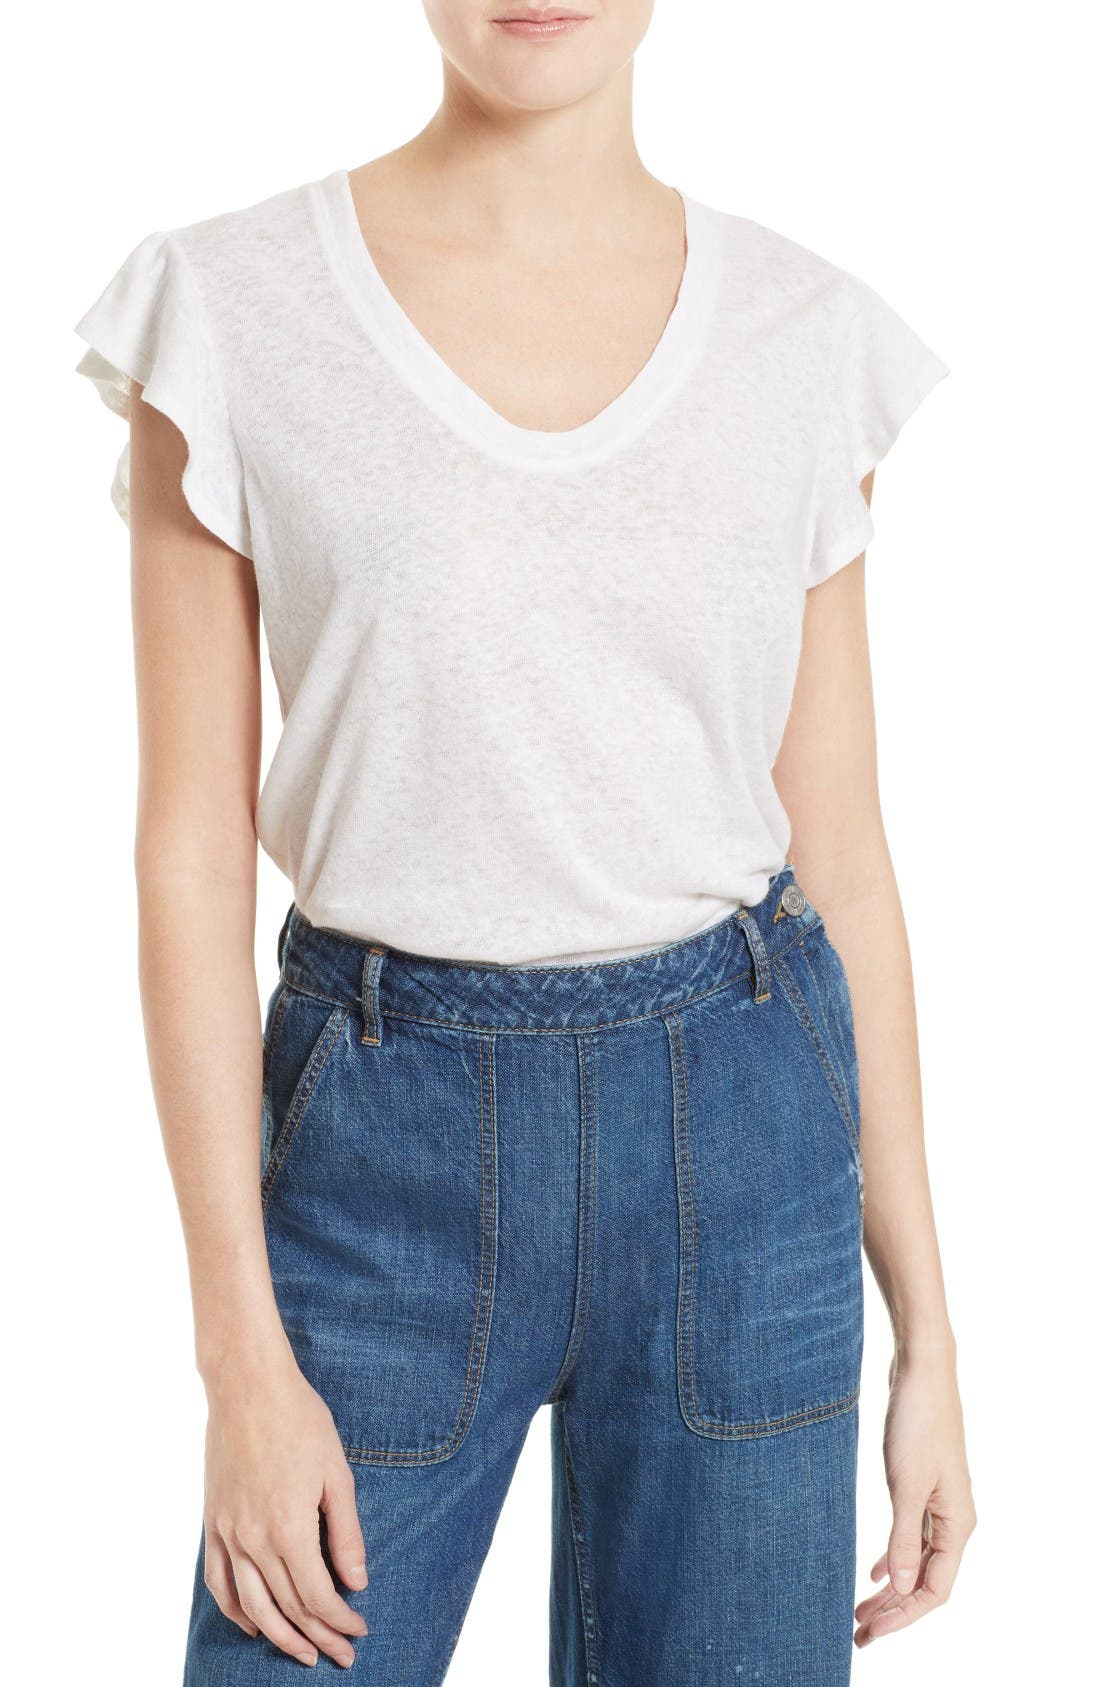 Main Image - La Vie Rebecca Taylor Washed Texture Jersey Tee